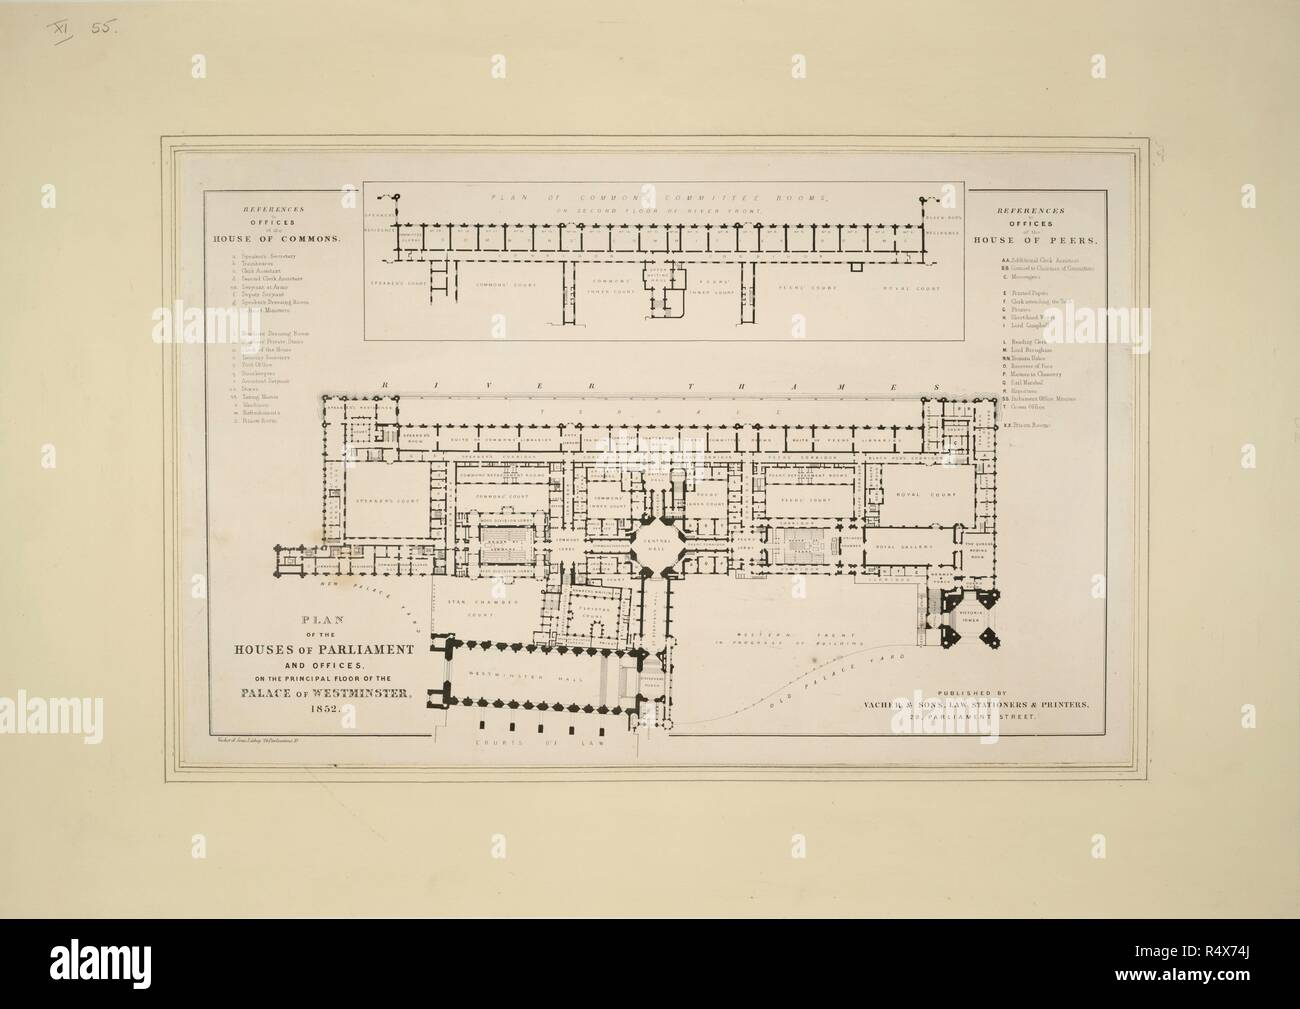 Plan of the houses of parliament and offices on the principal floor of the palace of westminster 1852 originally published produced in 1852